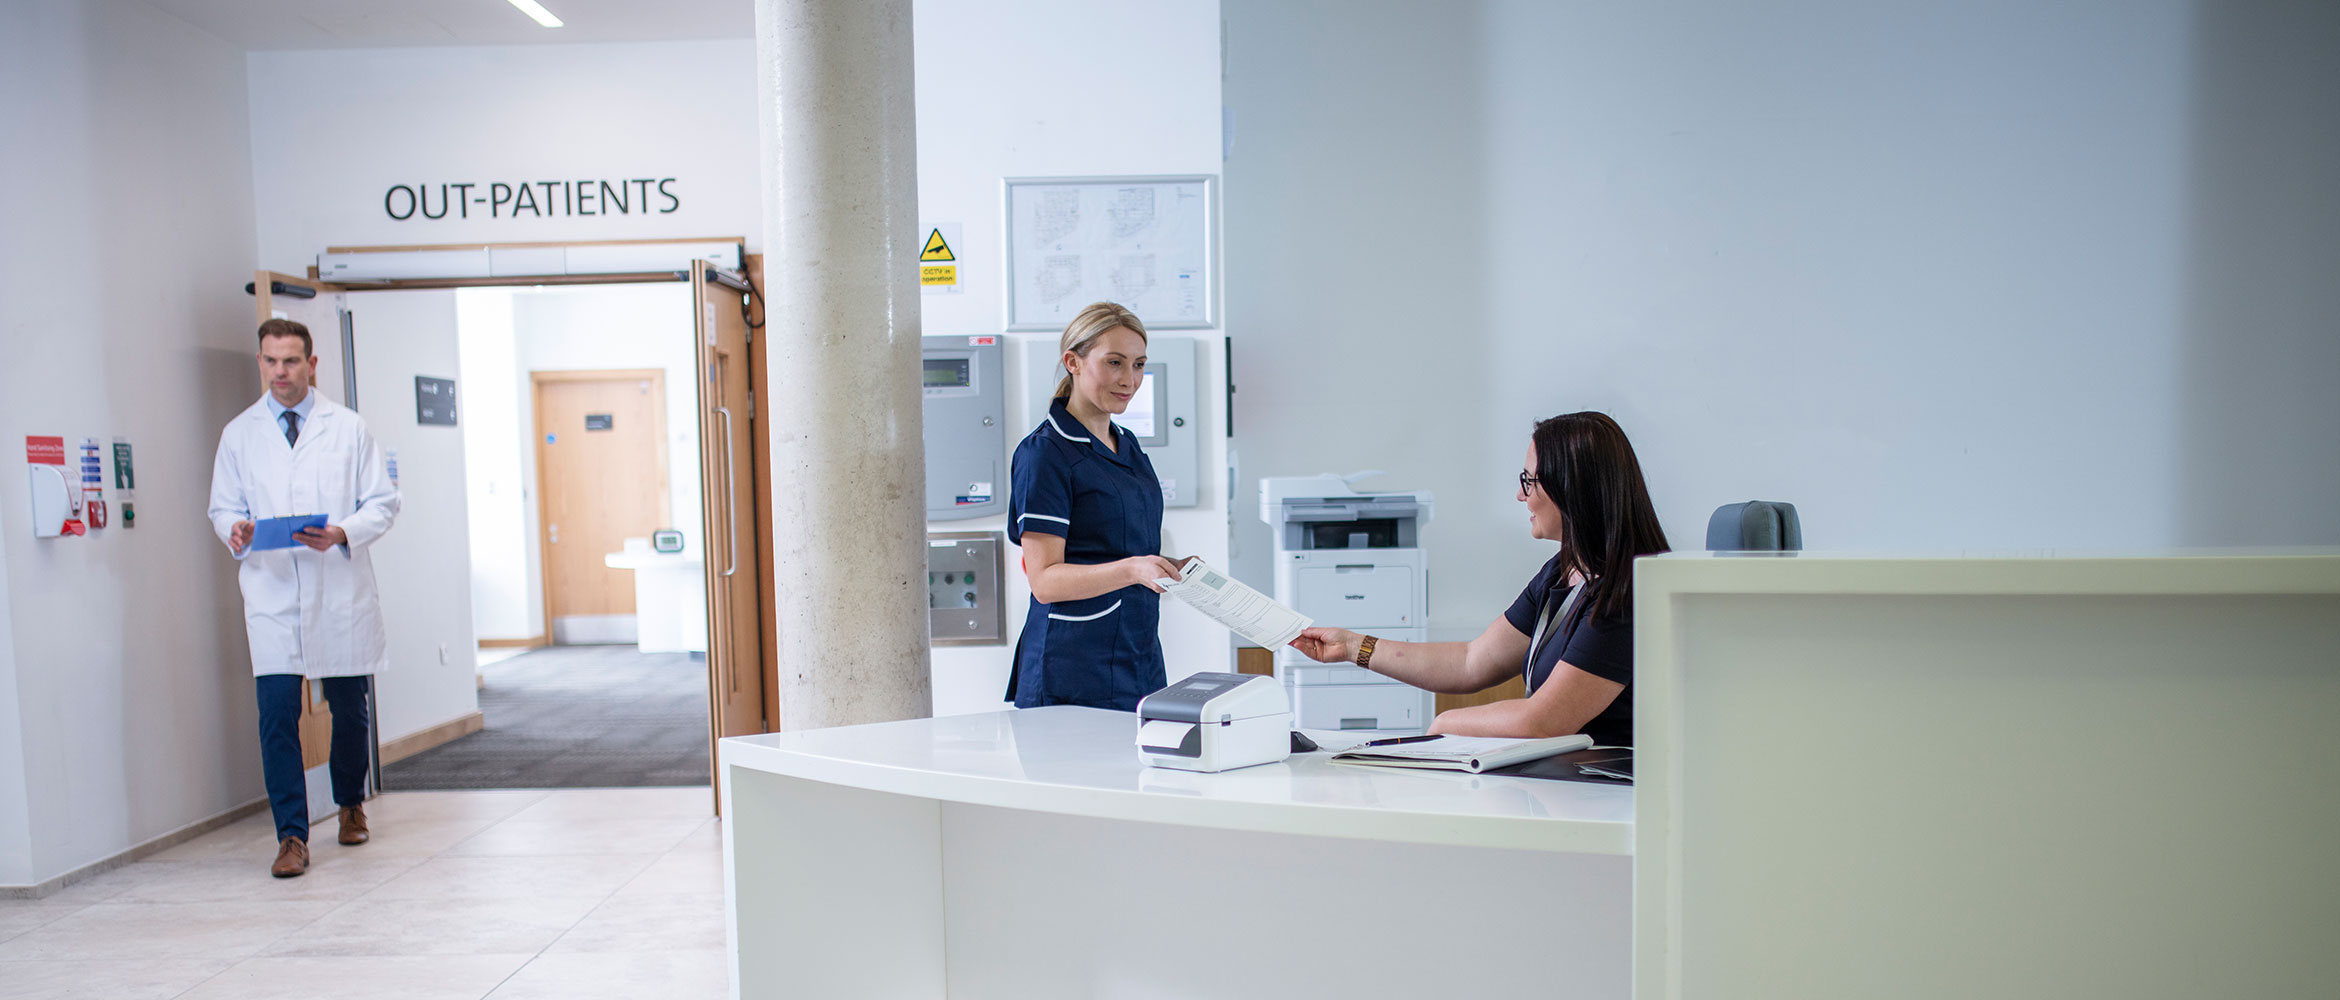 Receptionist wearing glasses sat at desk with nurse and doctor working in background